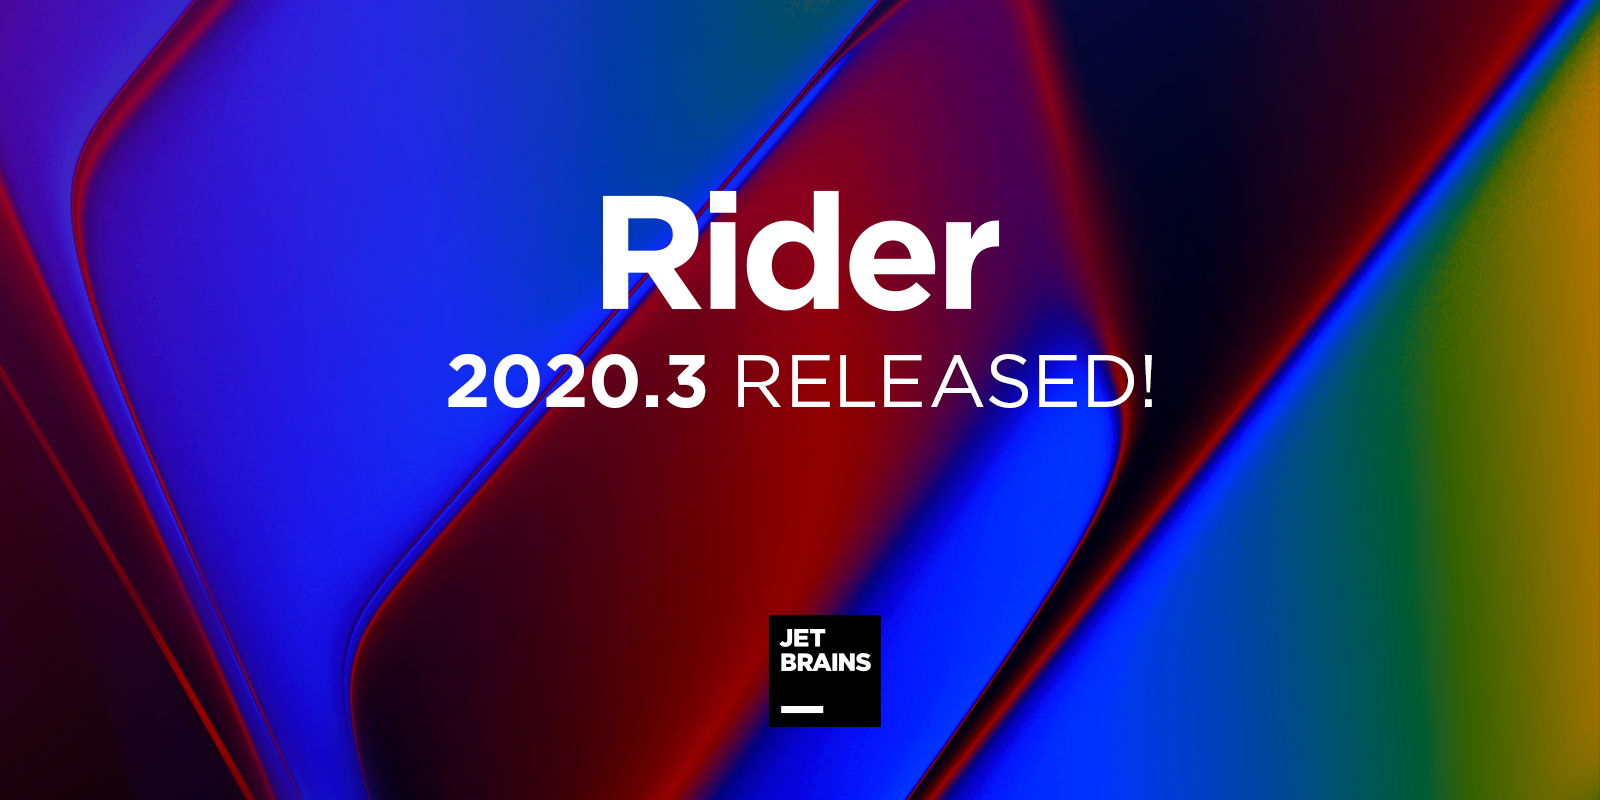 Rider 2020.3: .NET 5, C# 9, F# 5, Immediate Window, Project Dependency Diagram, and Updates to Unity Support